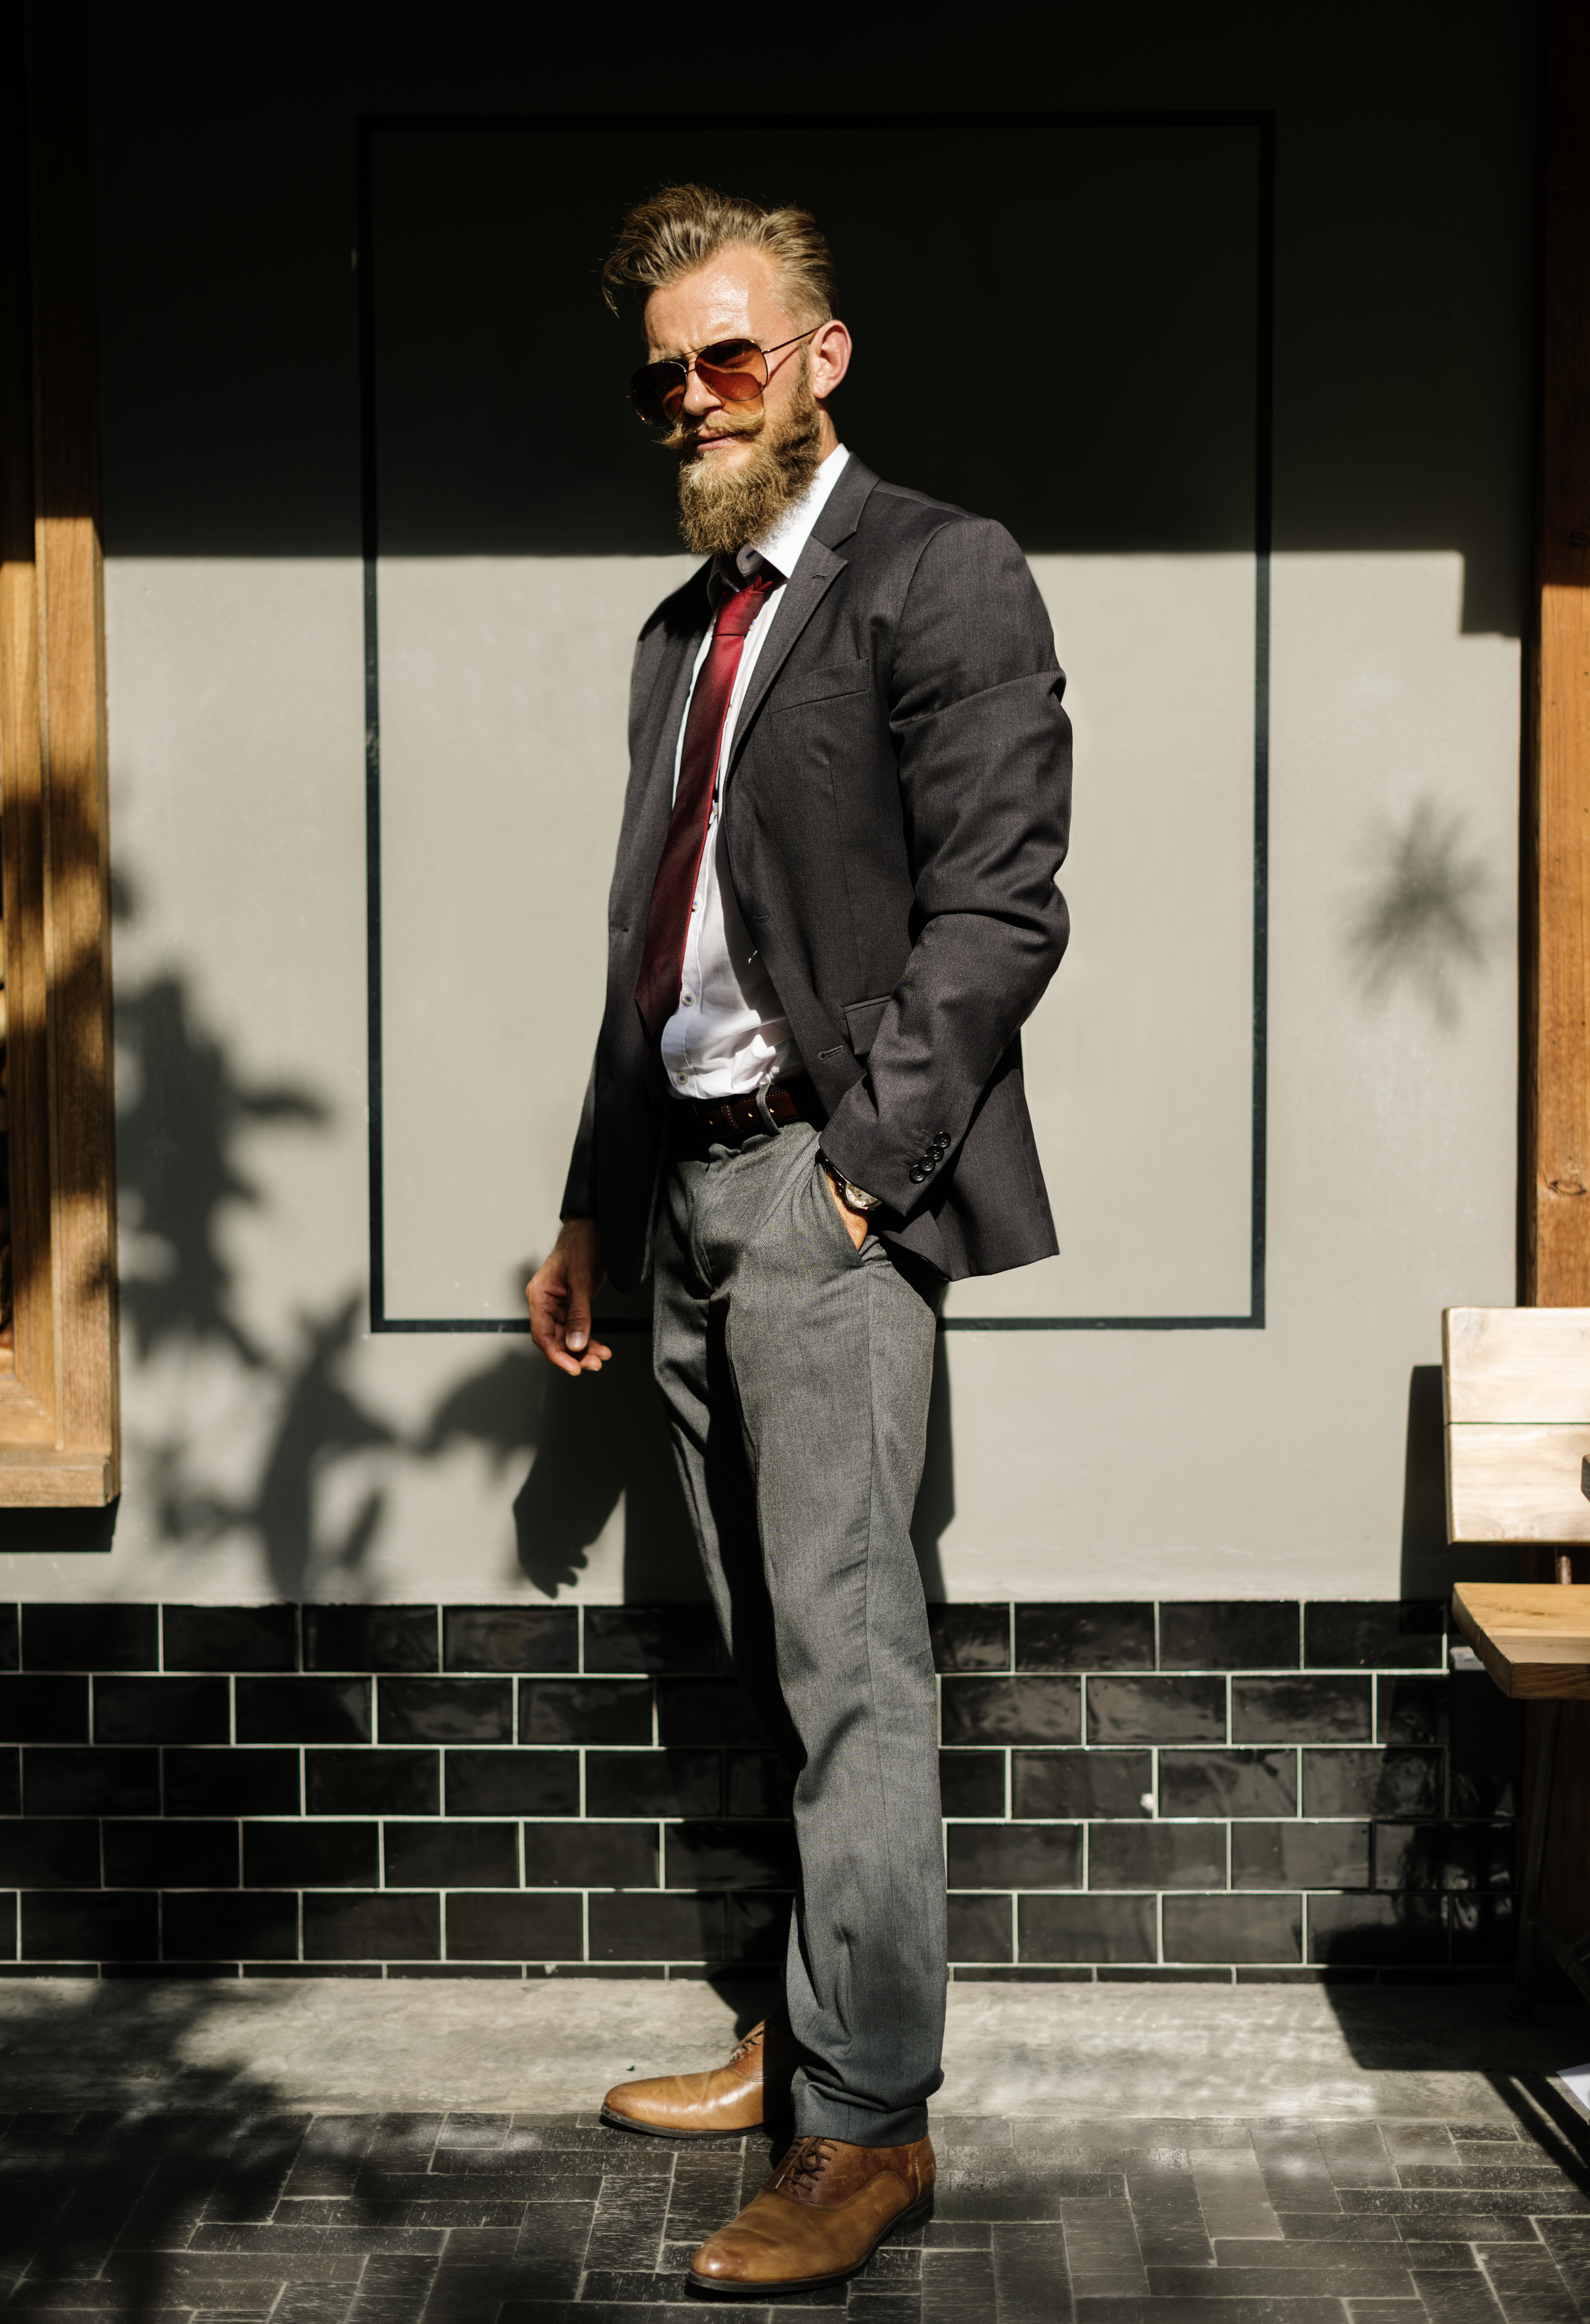 Free stock photo of fashion, man, person, suit